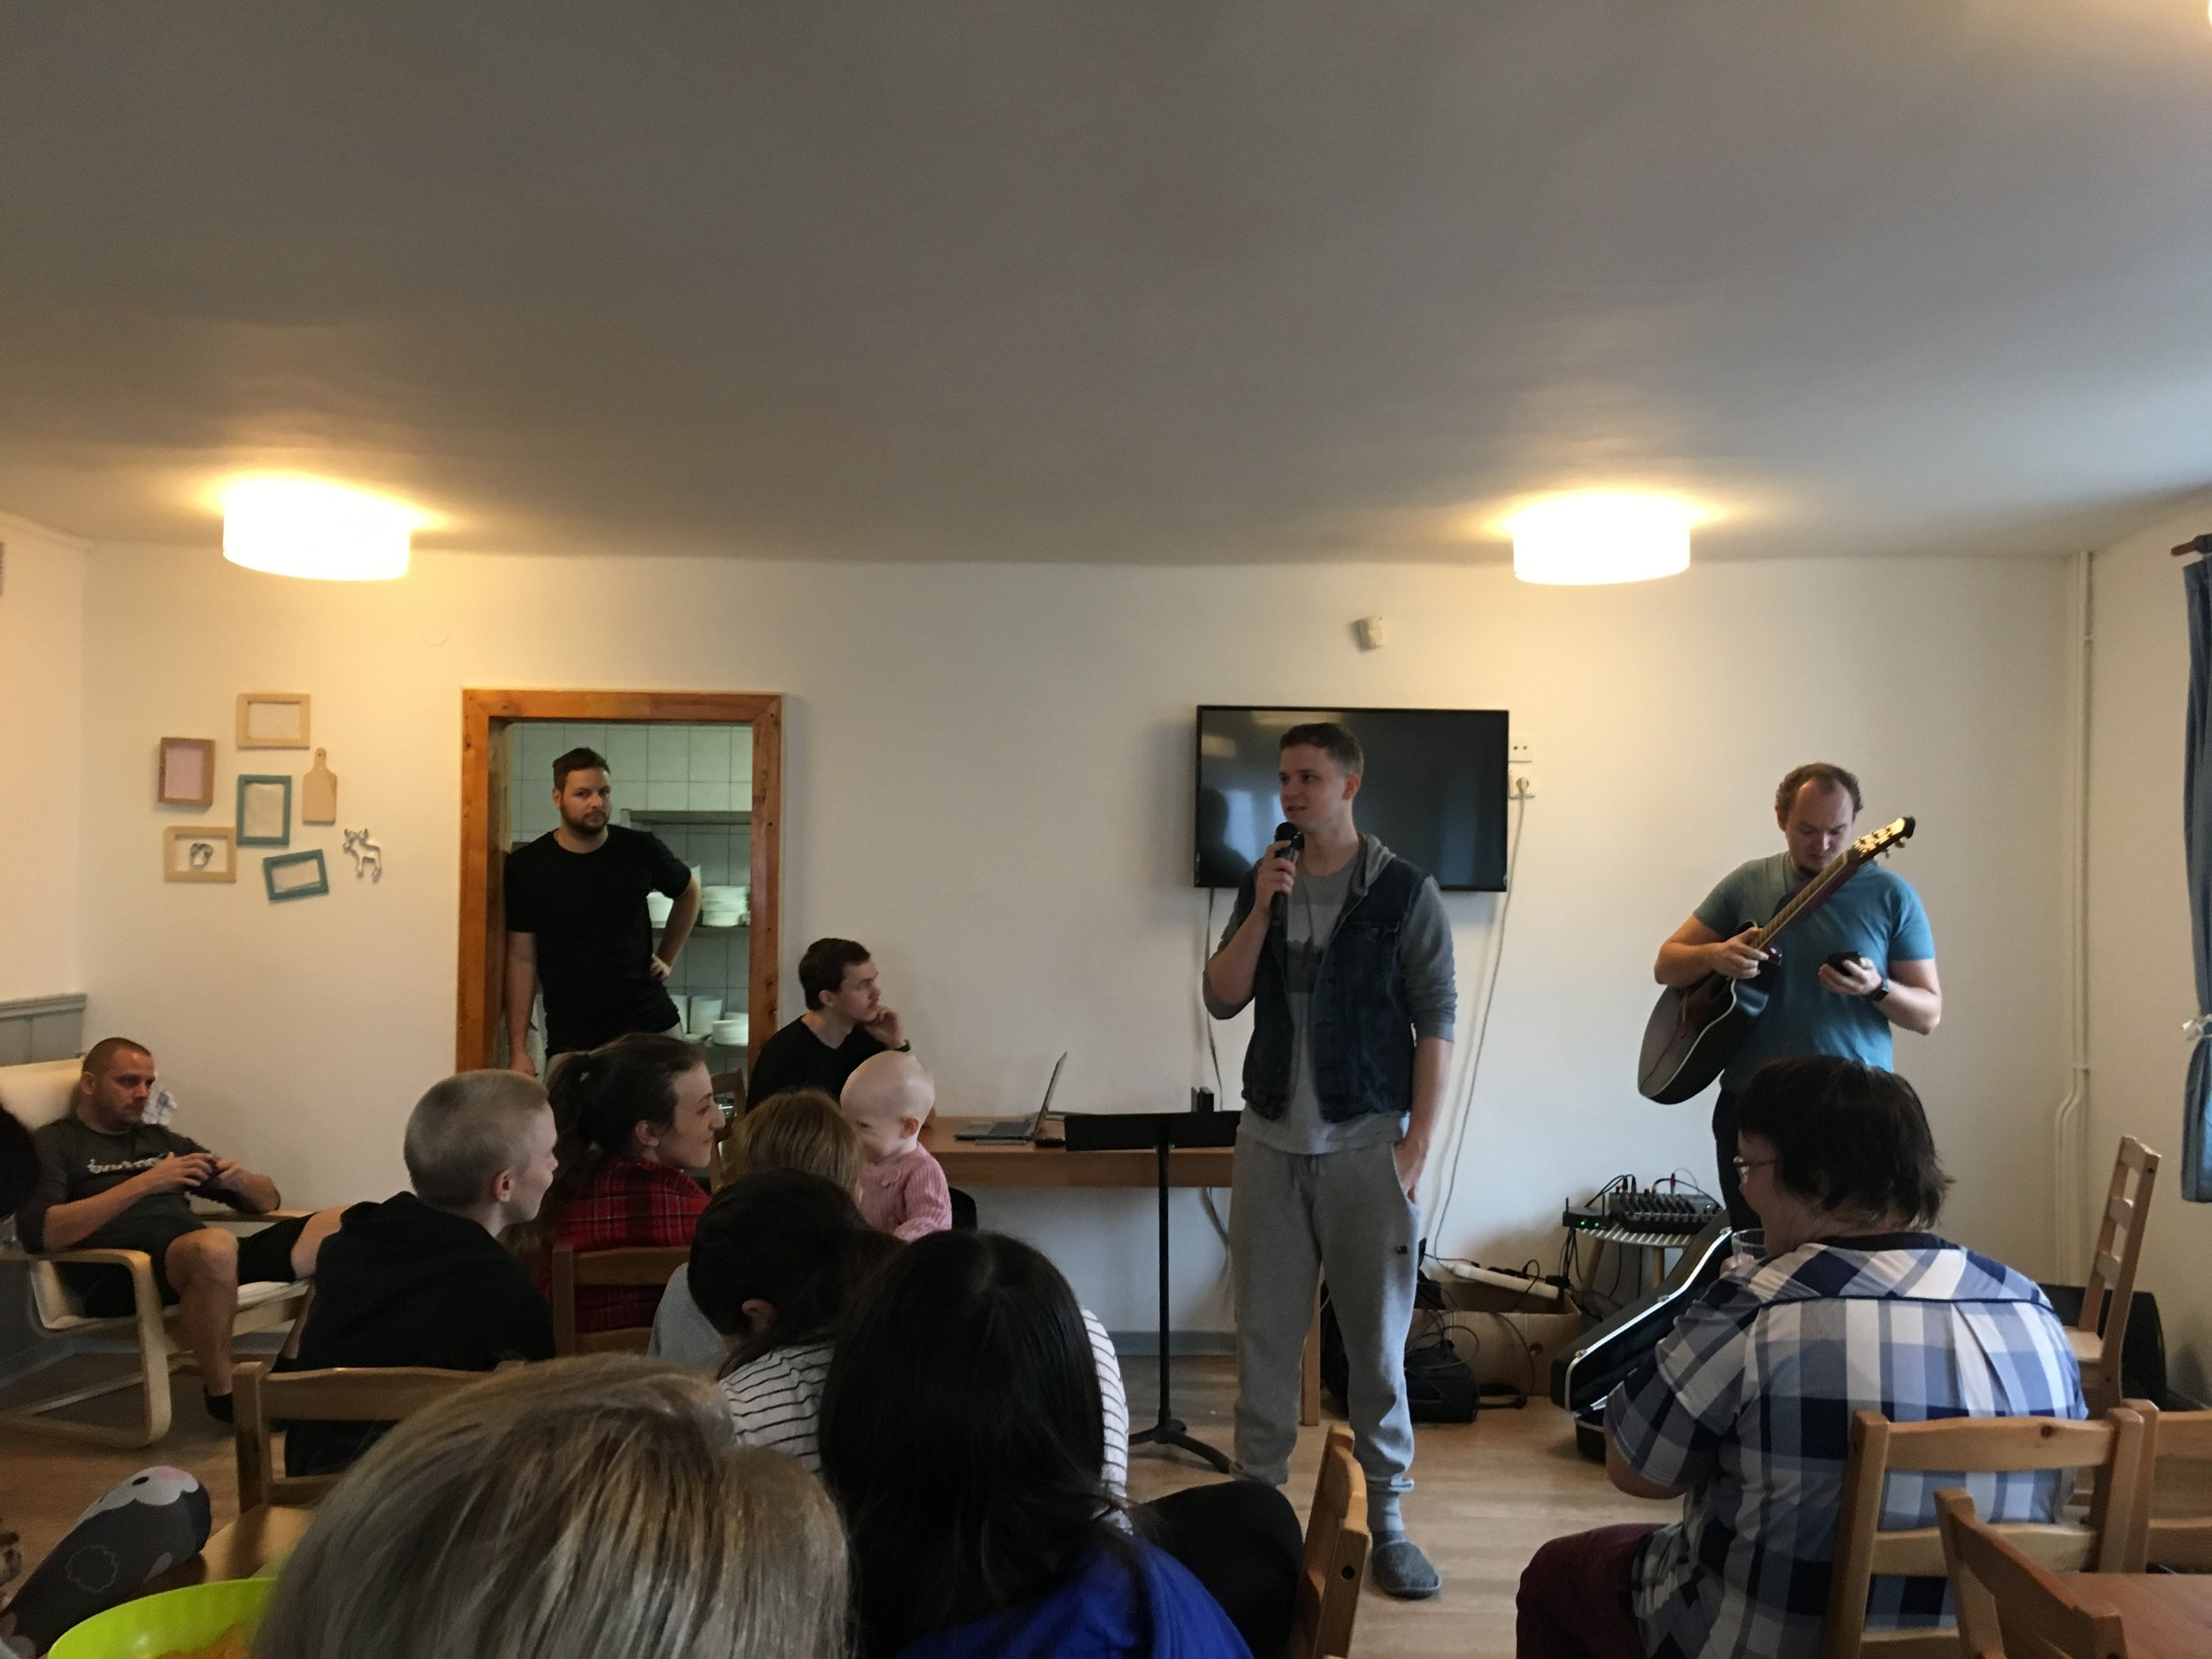 We joined Kostel Jinak for their weekend retreat. It was a great time connecting with them and the American team that came out to talk/pray/dream about the future church plant in Olomouc.